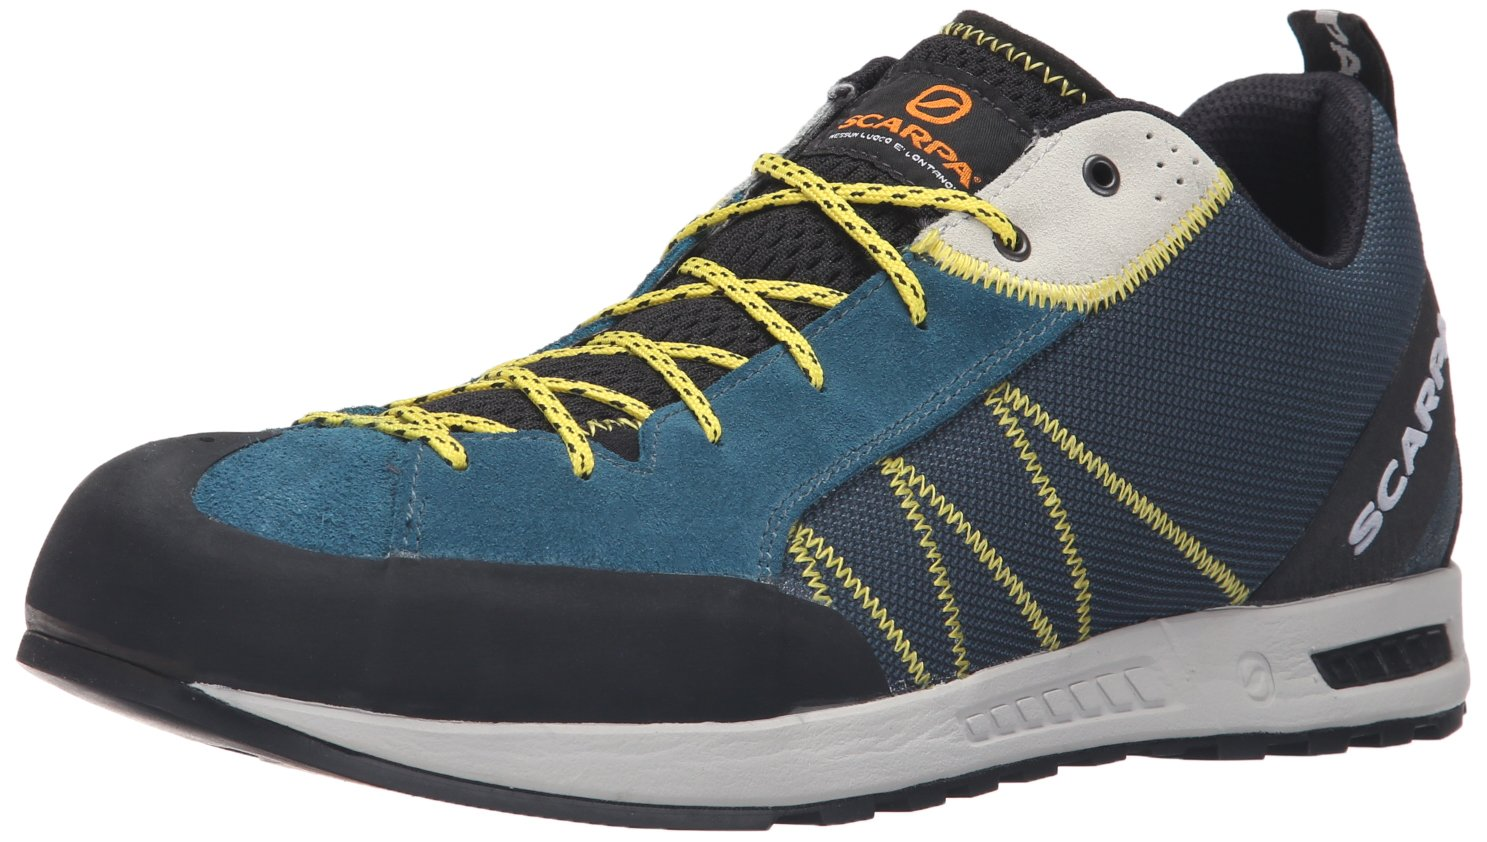 SCARPA Men's Gecko Lite Approach Shoe, Lake Blue/Yellow, 44.5 EU/11 M US